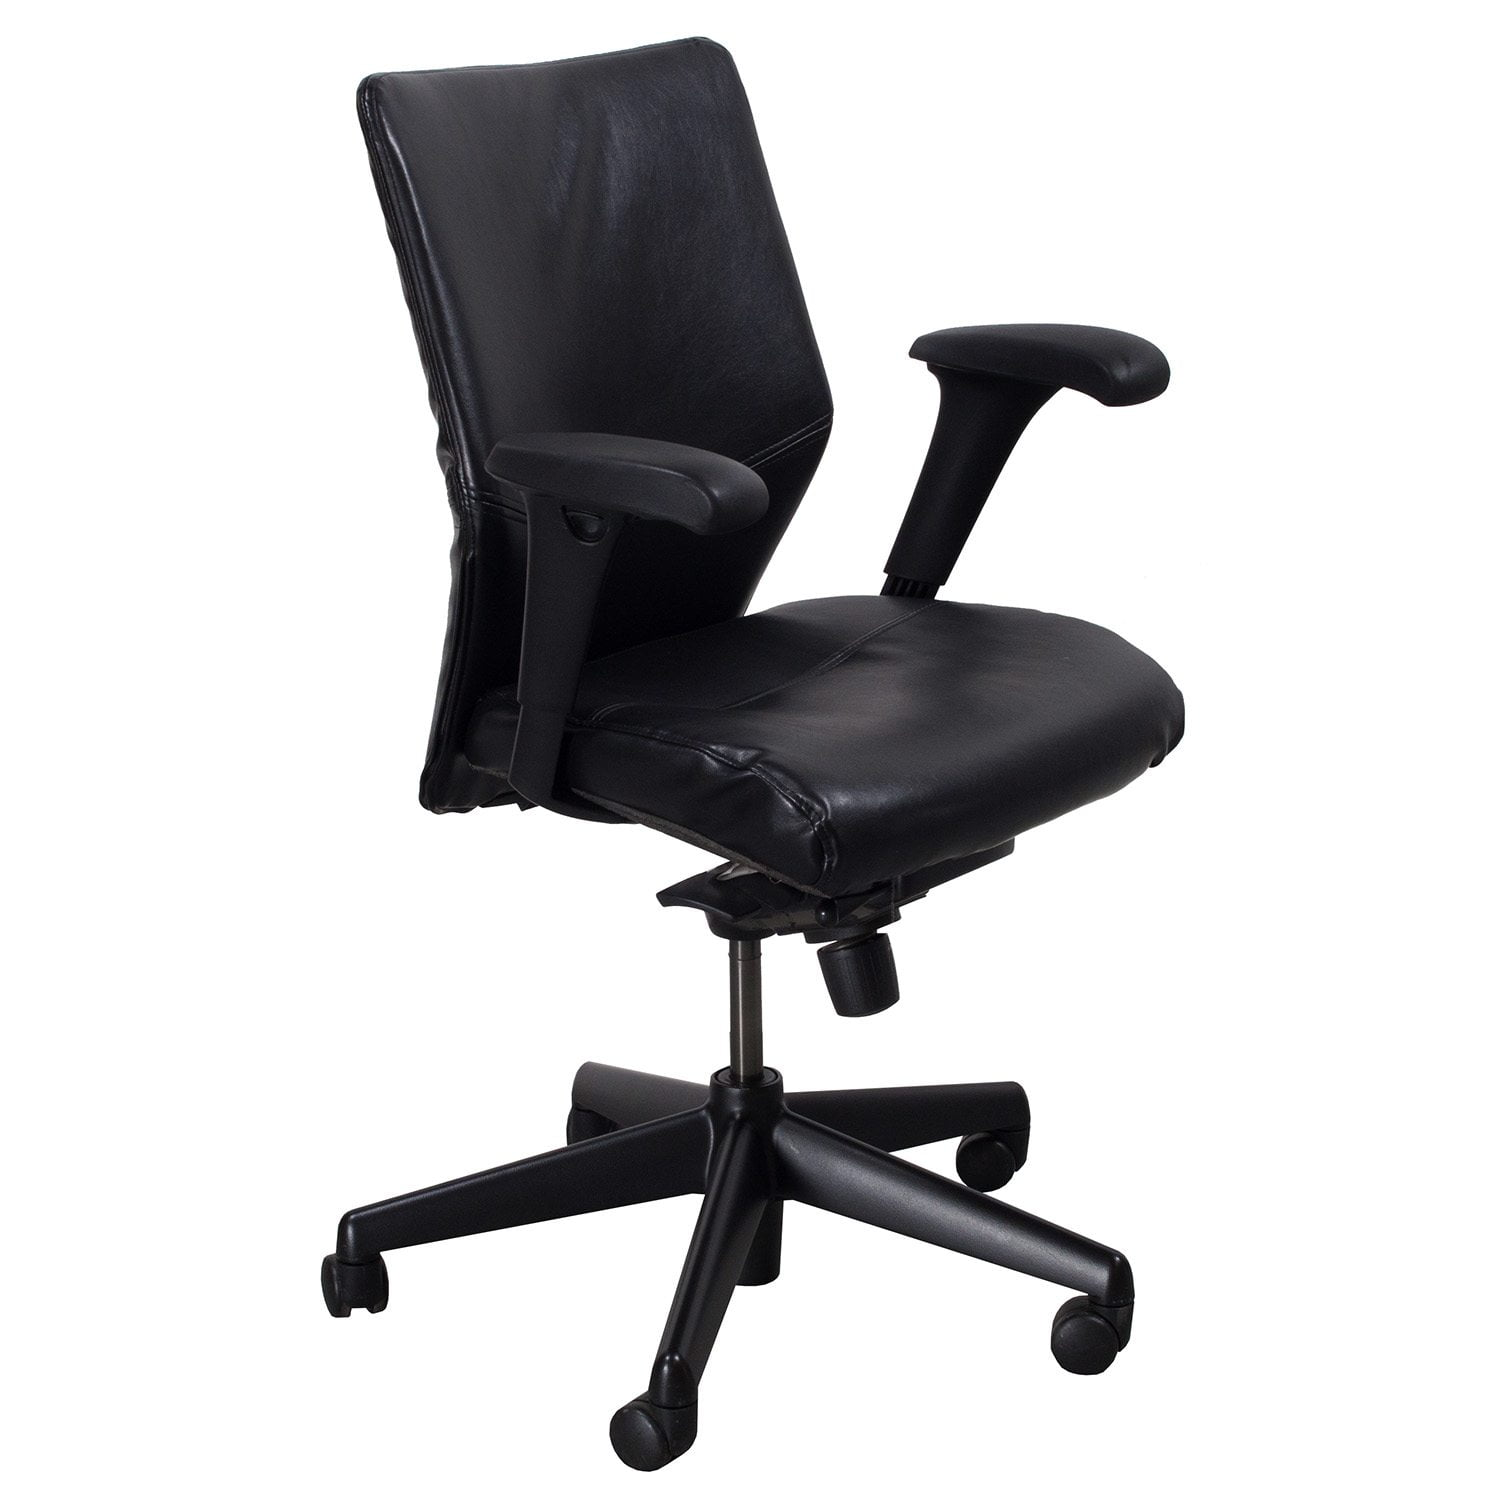 reupholster office chair back dxracer gaming uk keilhauer tom reupholstered used leather mid task